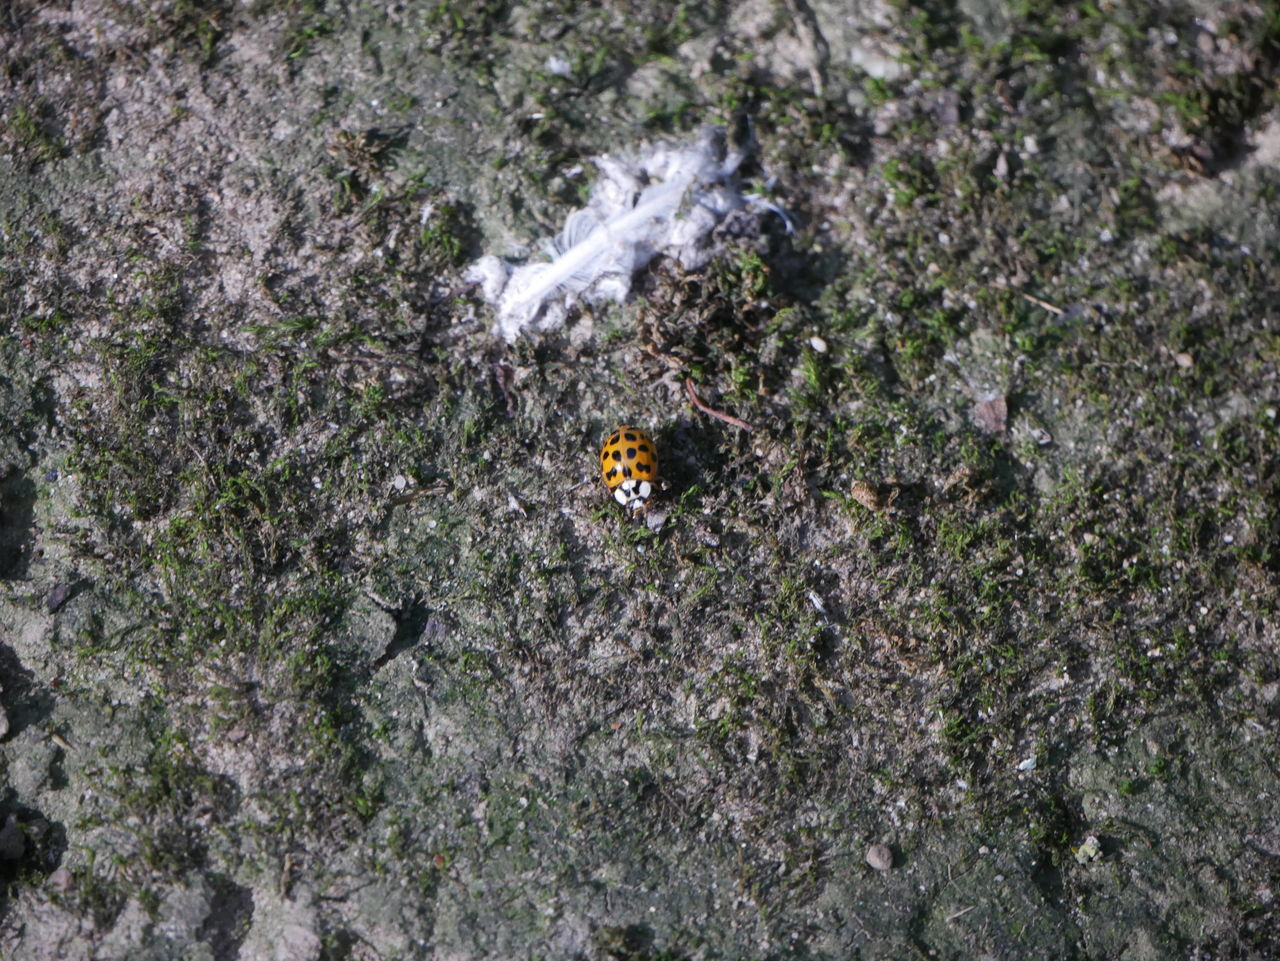 insect, animal themes, animals in the wild, one animal, high angle view, no people, outdoors, nature, day, animal wildlife, close-up, ladybug